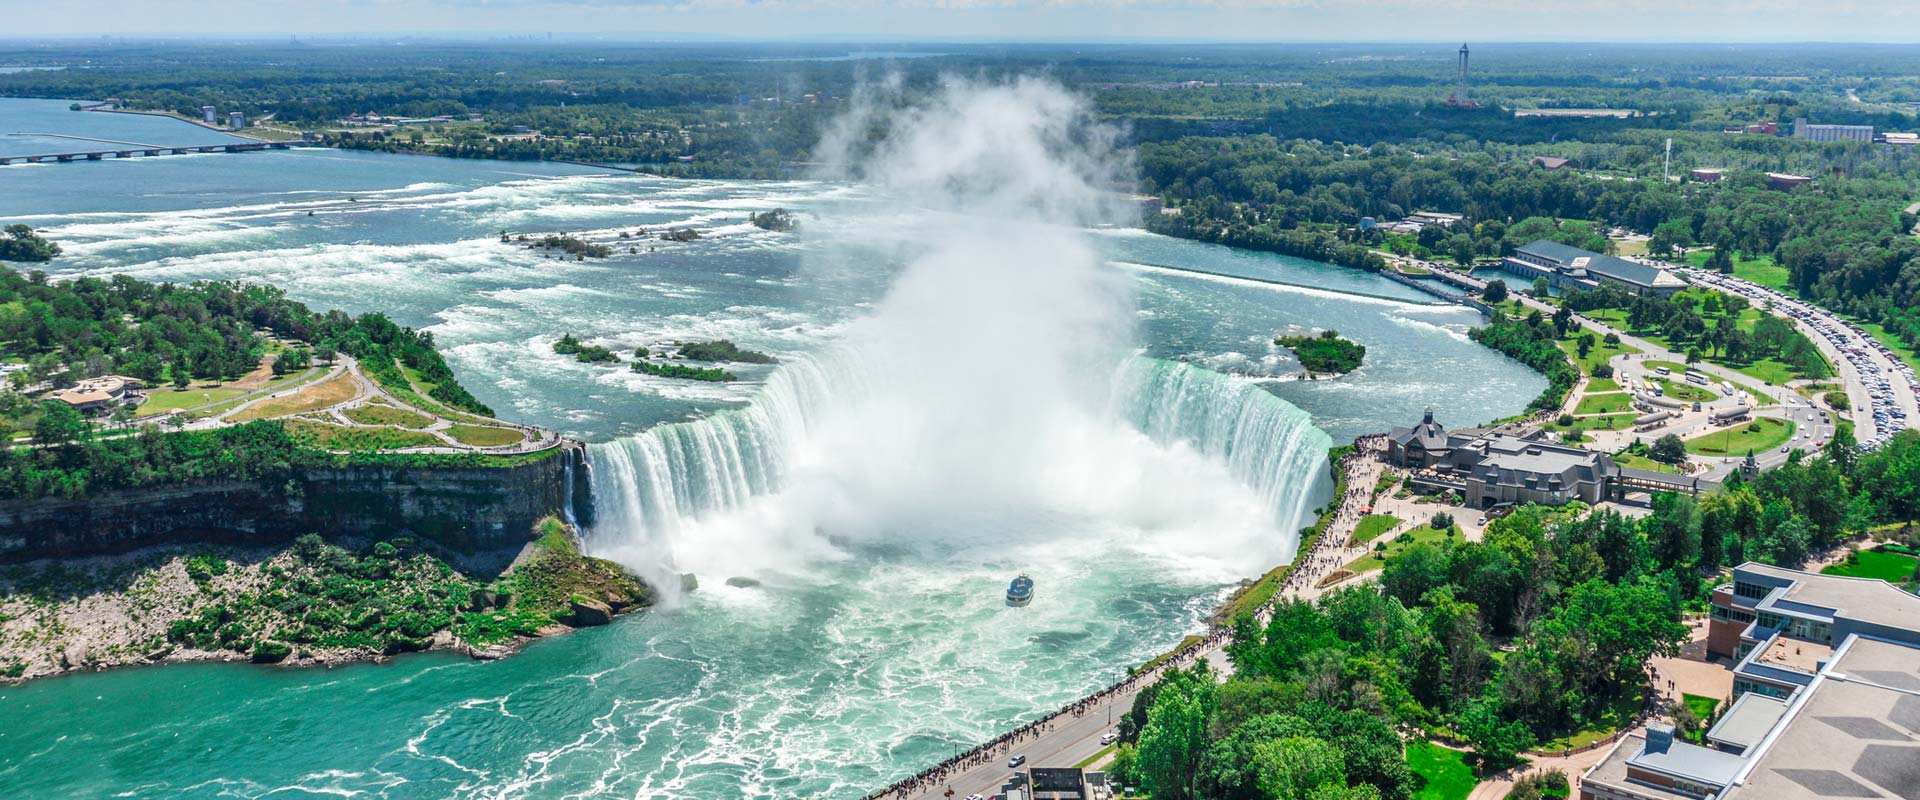 Half Day Tours of Niagara Falls from Toronto